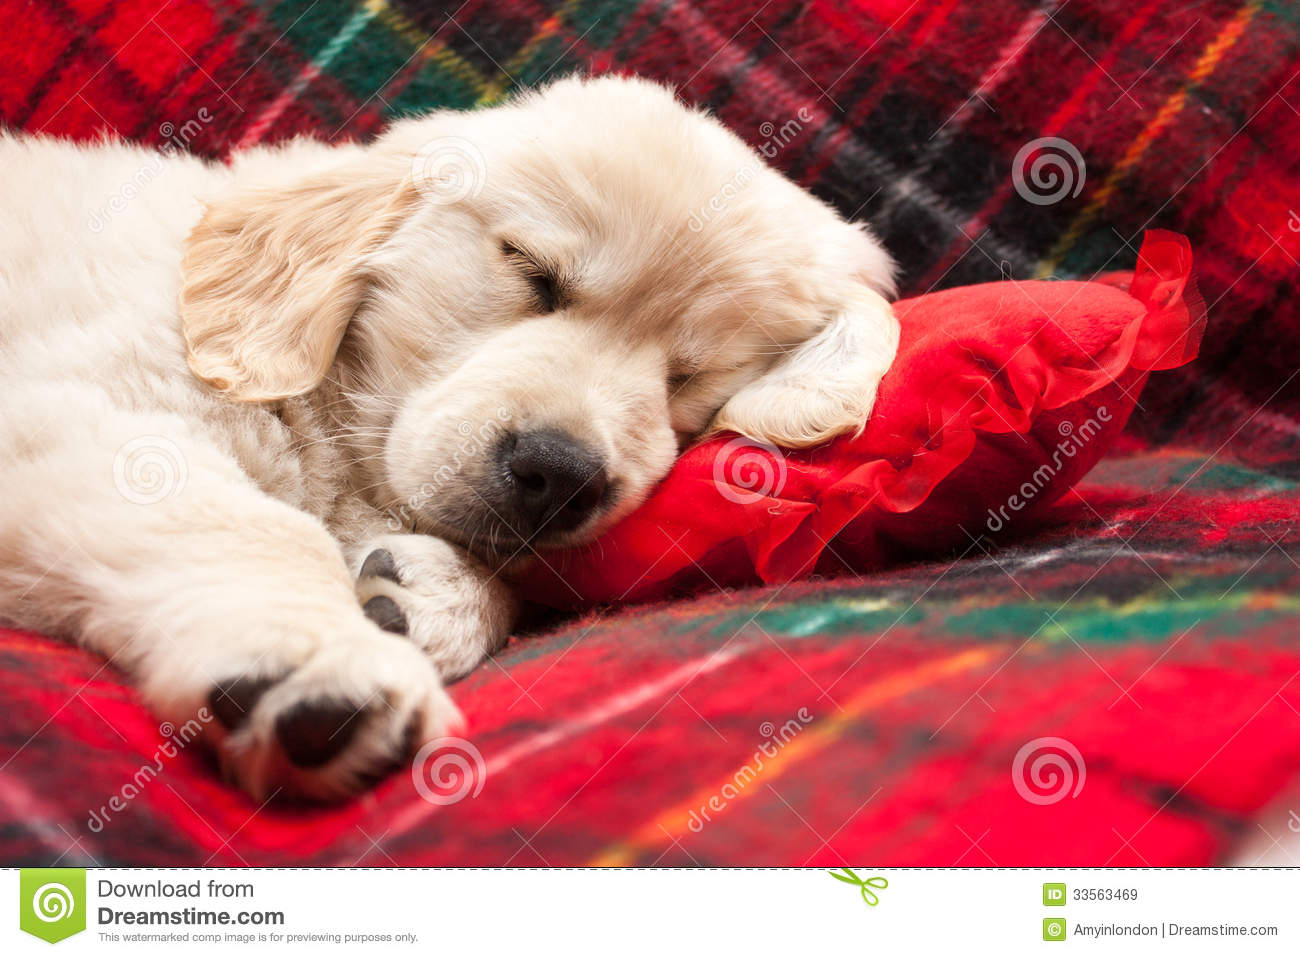 Sleeping Puppy On Plaid Stock Image Image Of Friend